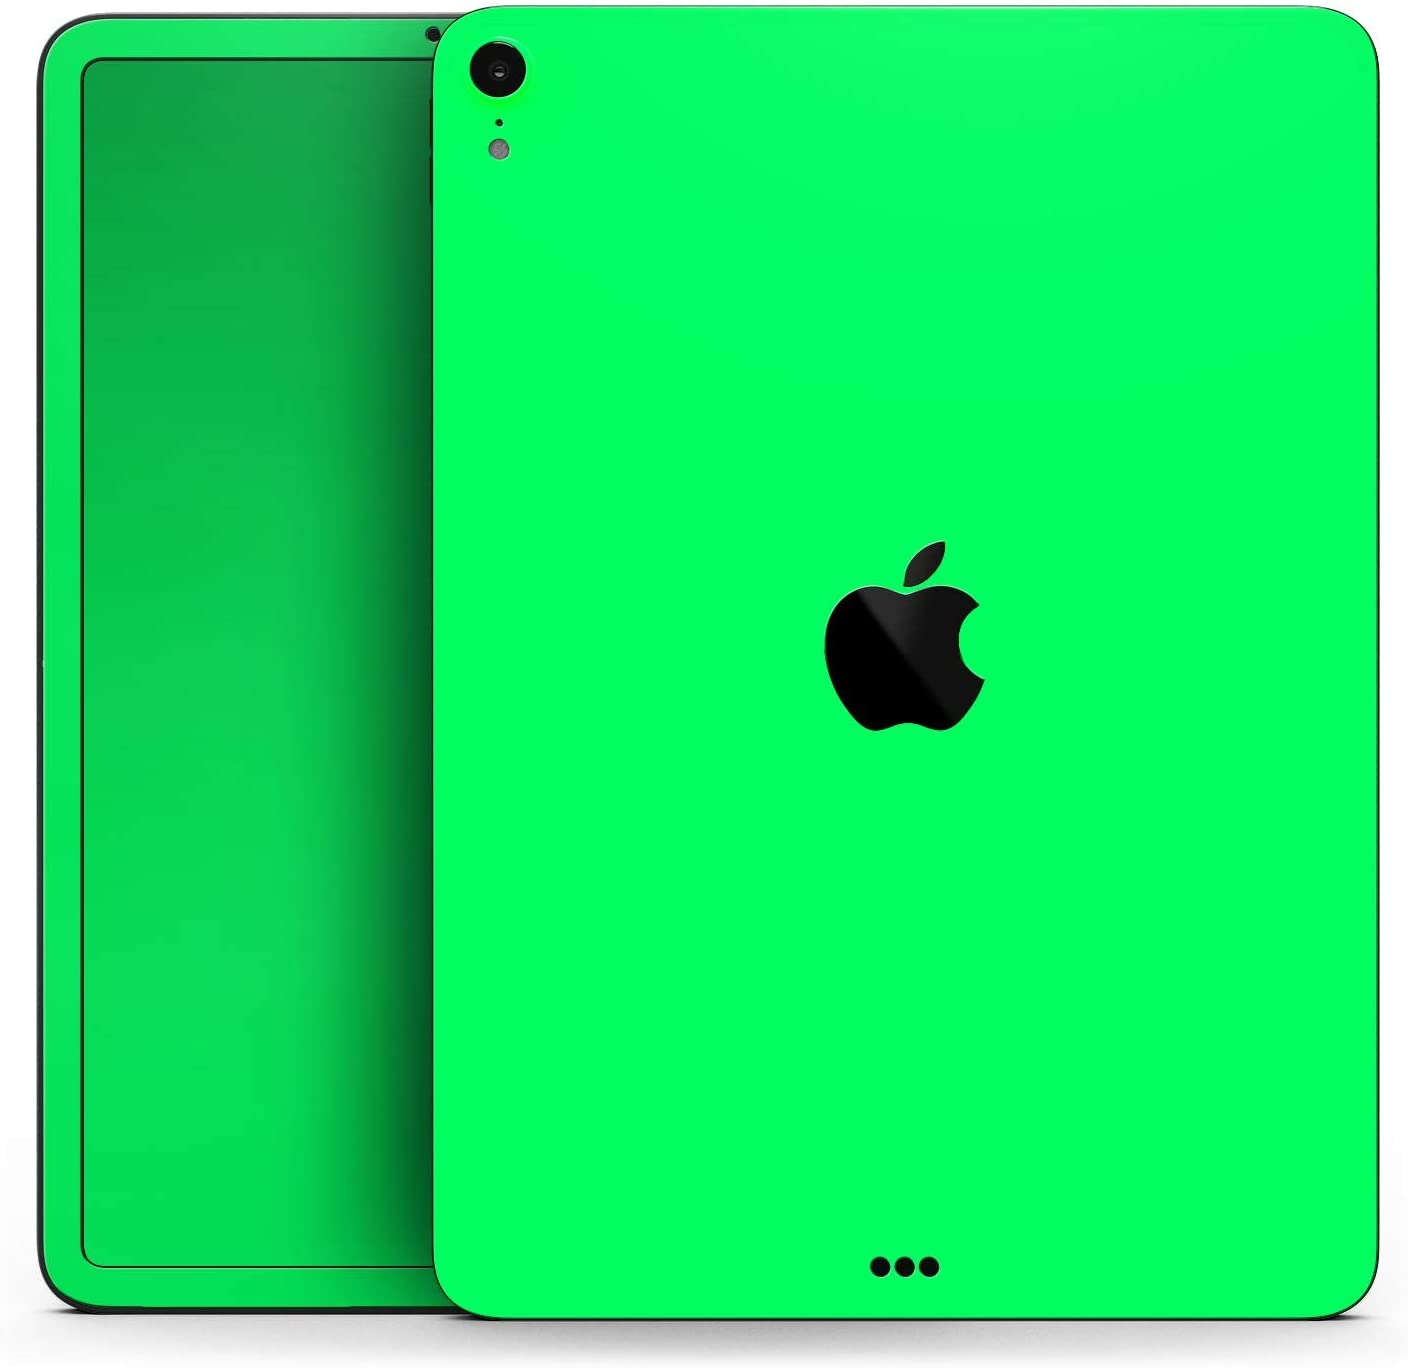 1408x1368 - Solid Green 16